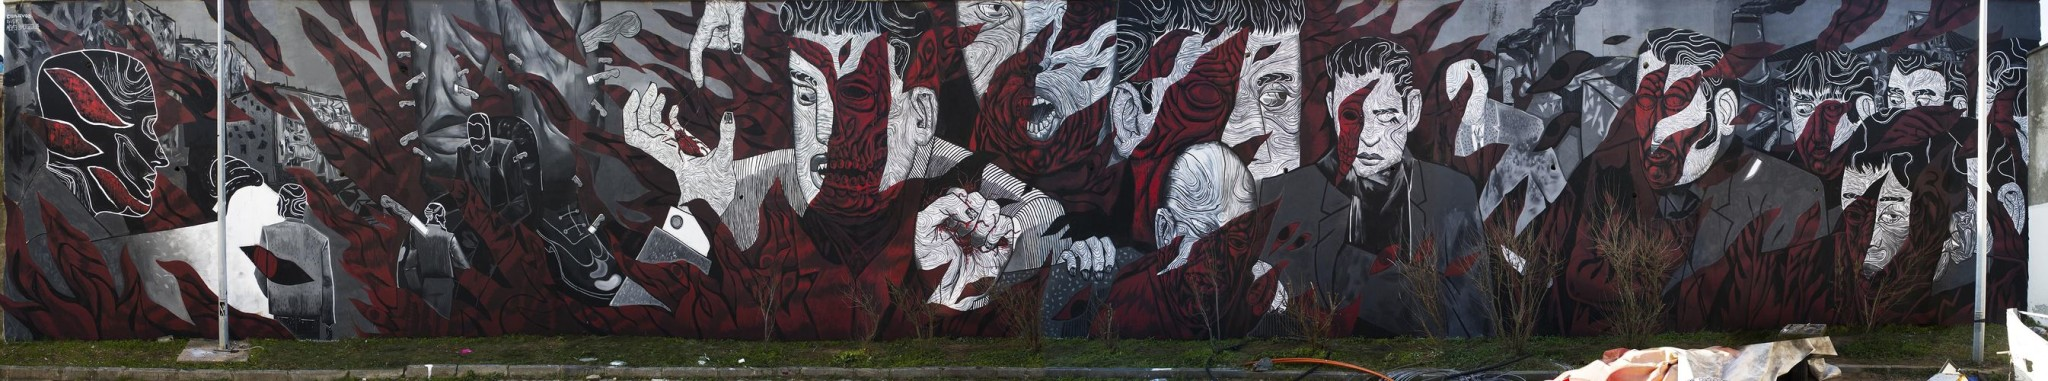 Artwork By ares in Istanbul (Characters, Long wall, Street Art)